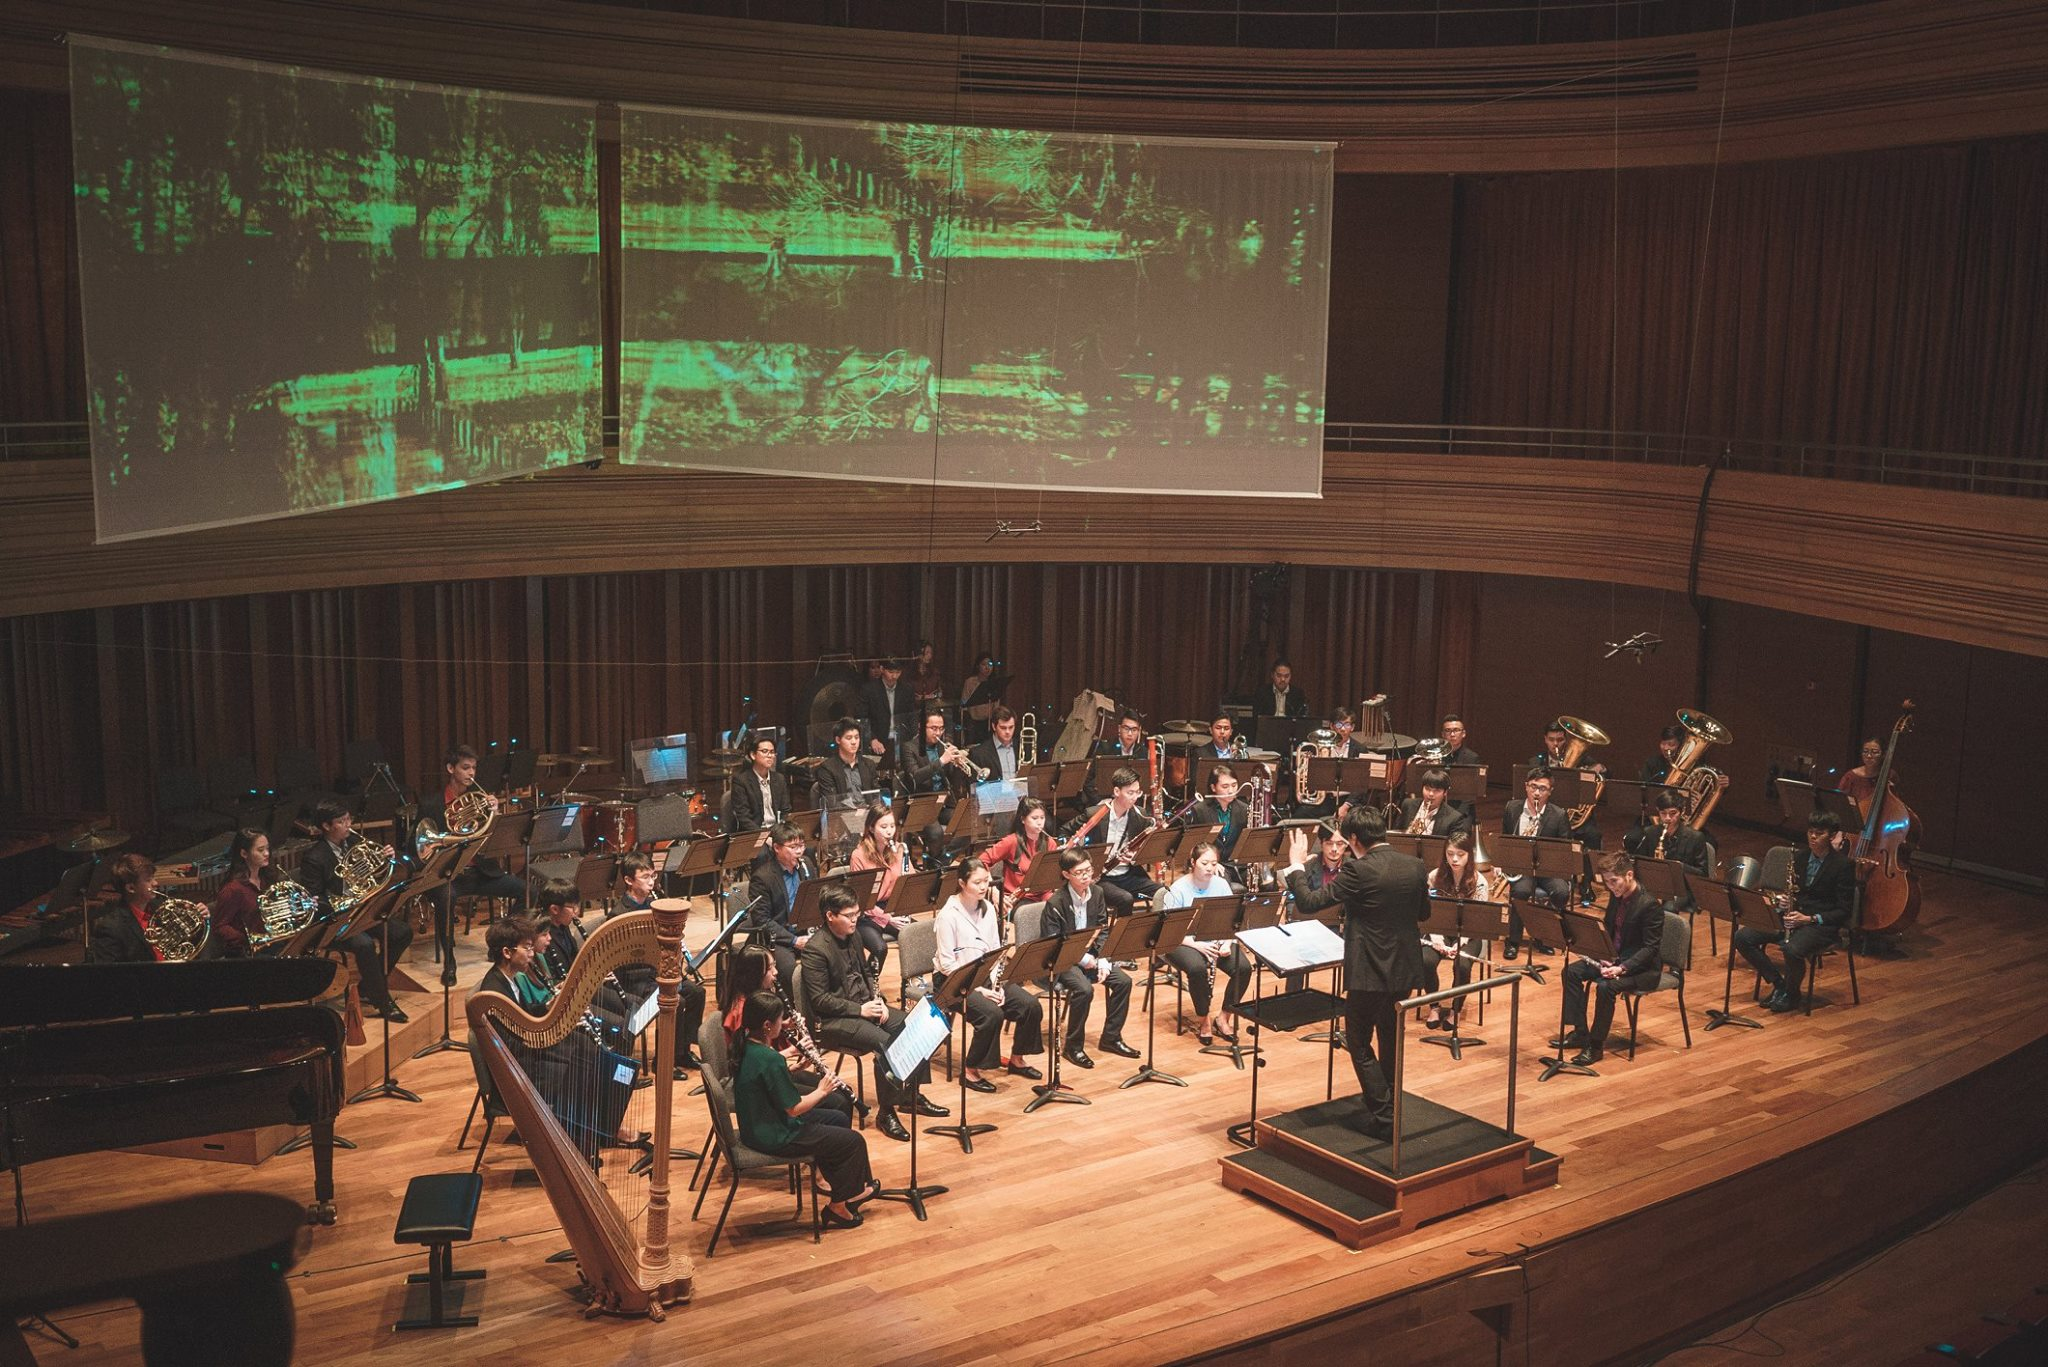 The YST Wind Consort's debut was accompanied by visuals by Theemptybluesky.